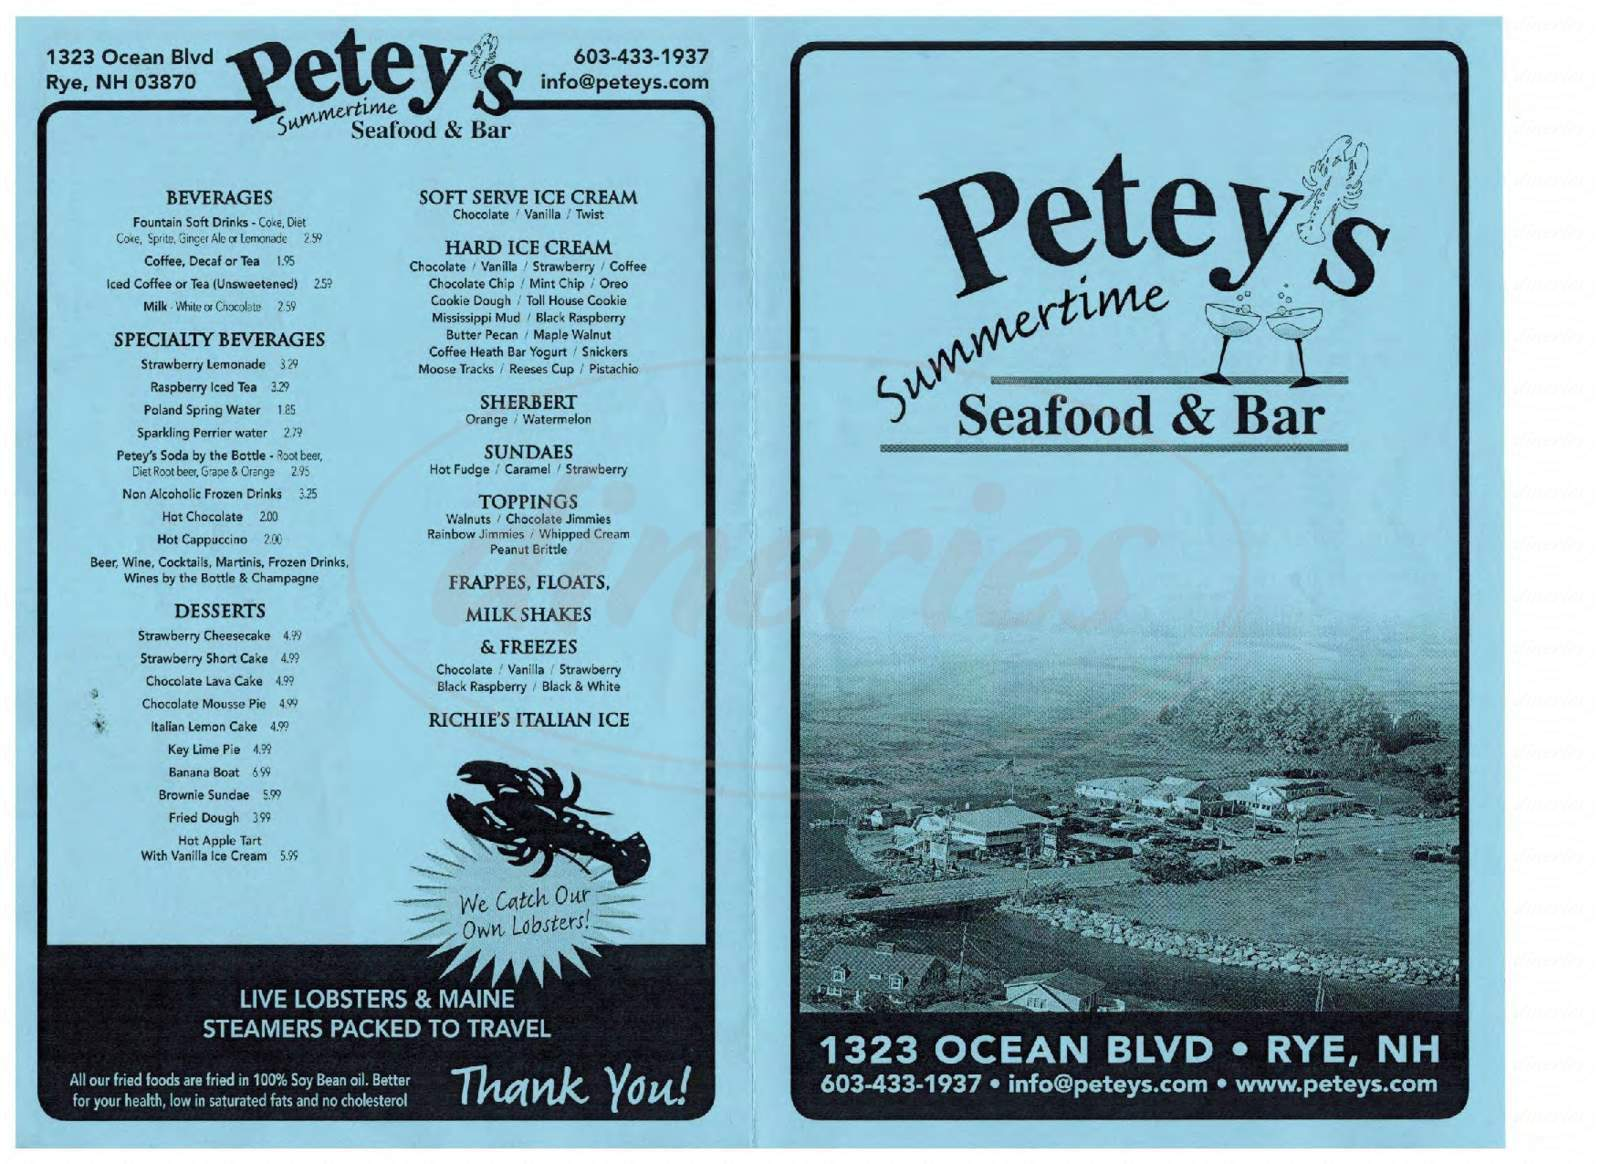 menu for Petey's Summertime Seafood & Bar